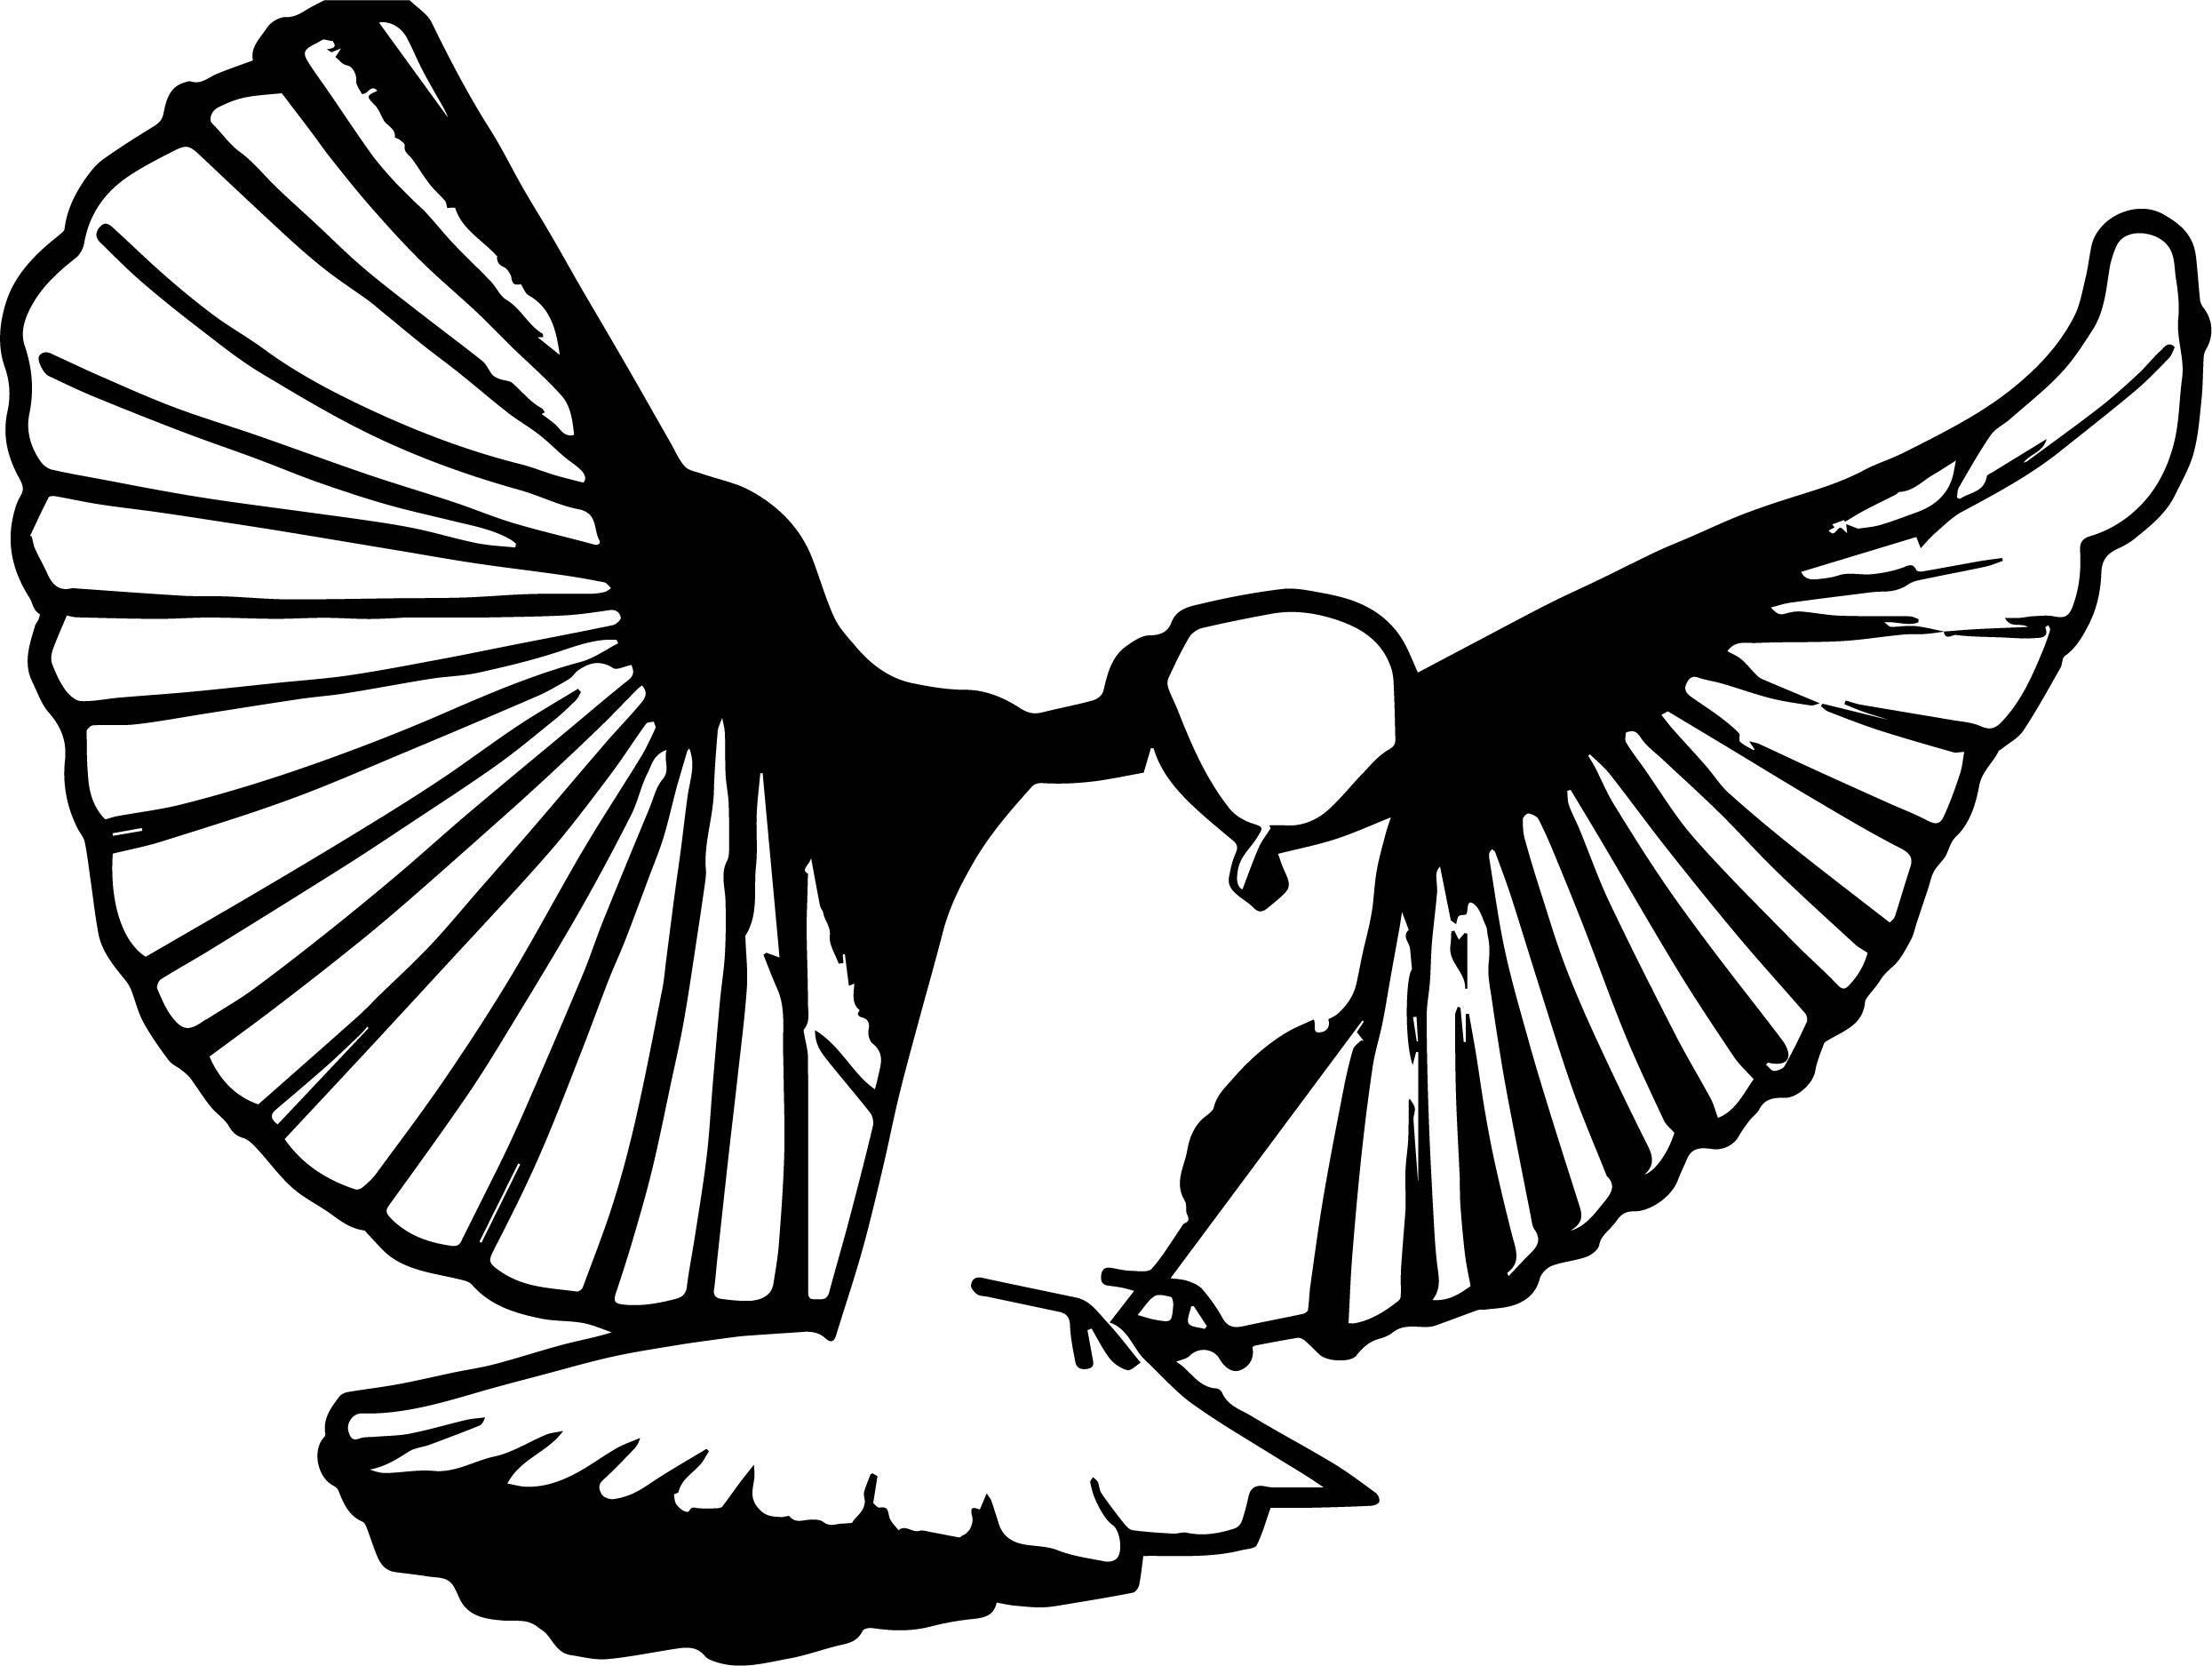 For Bird Coloring Page